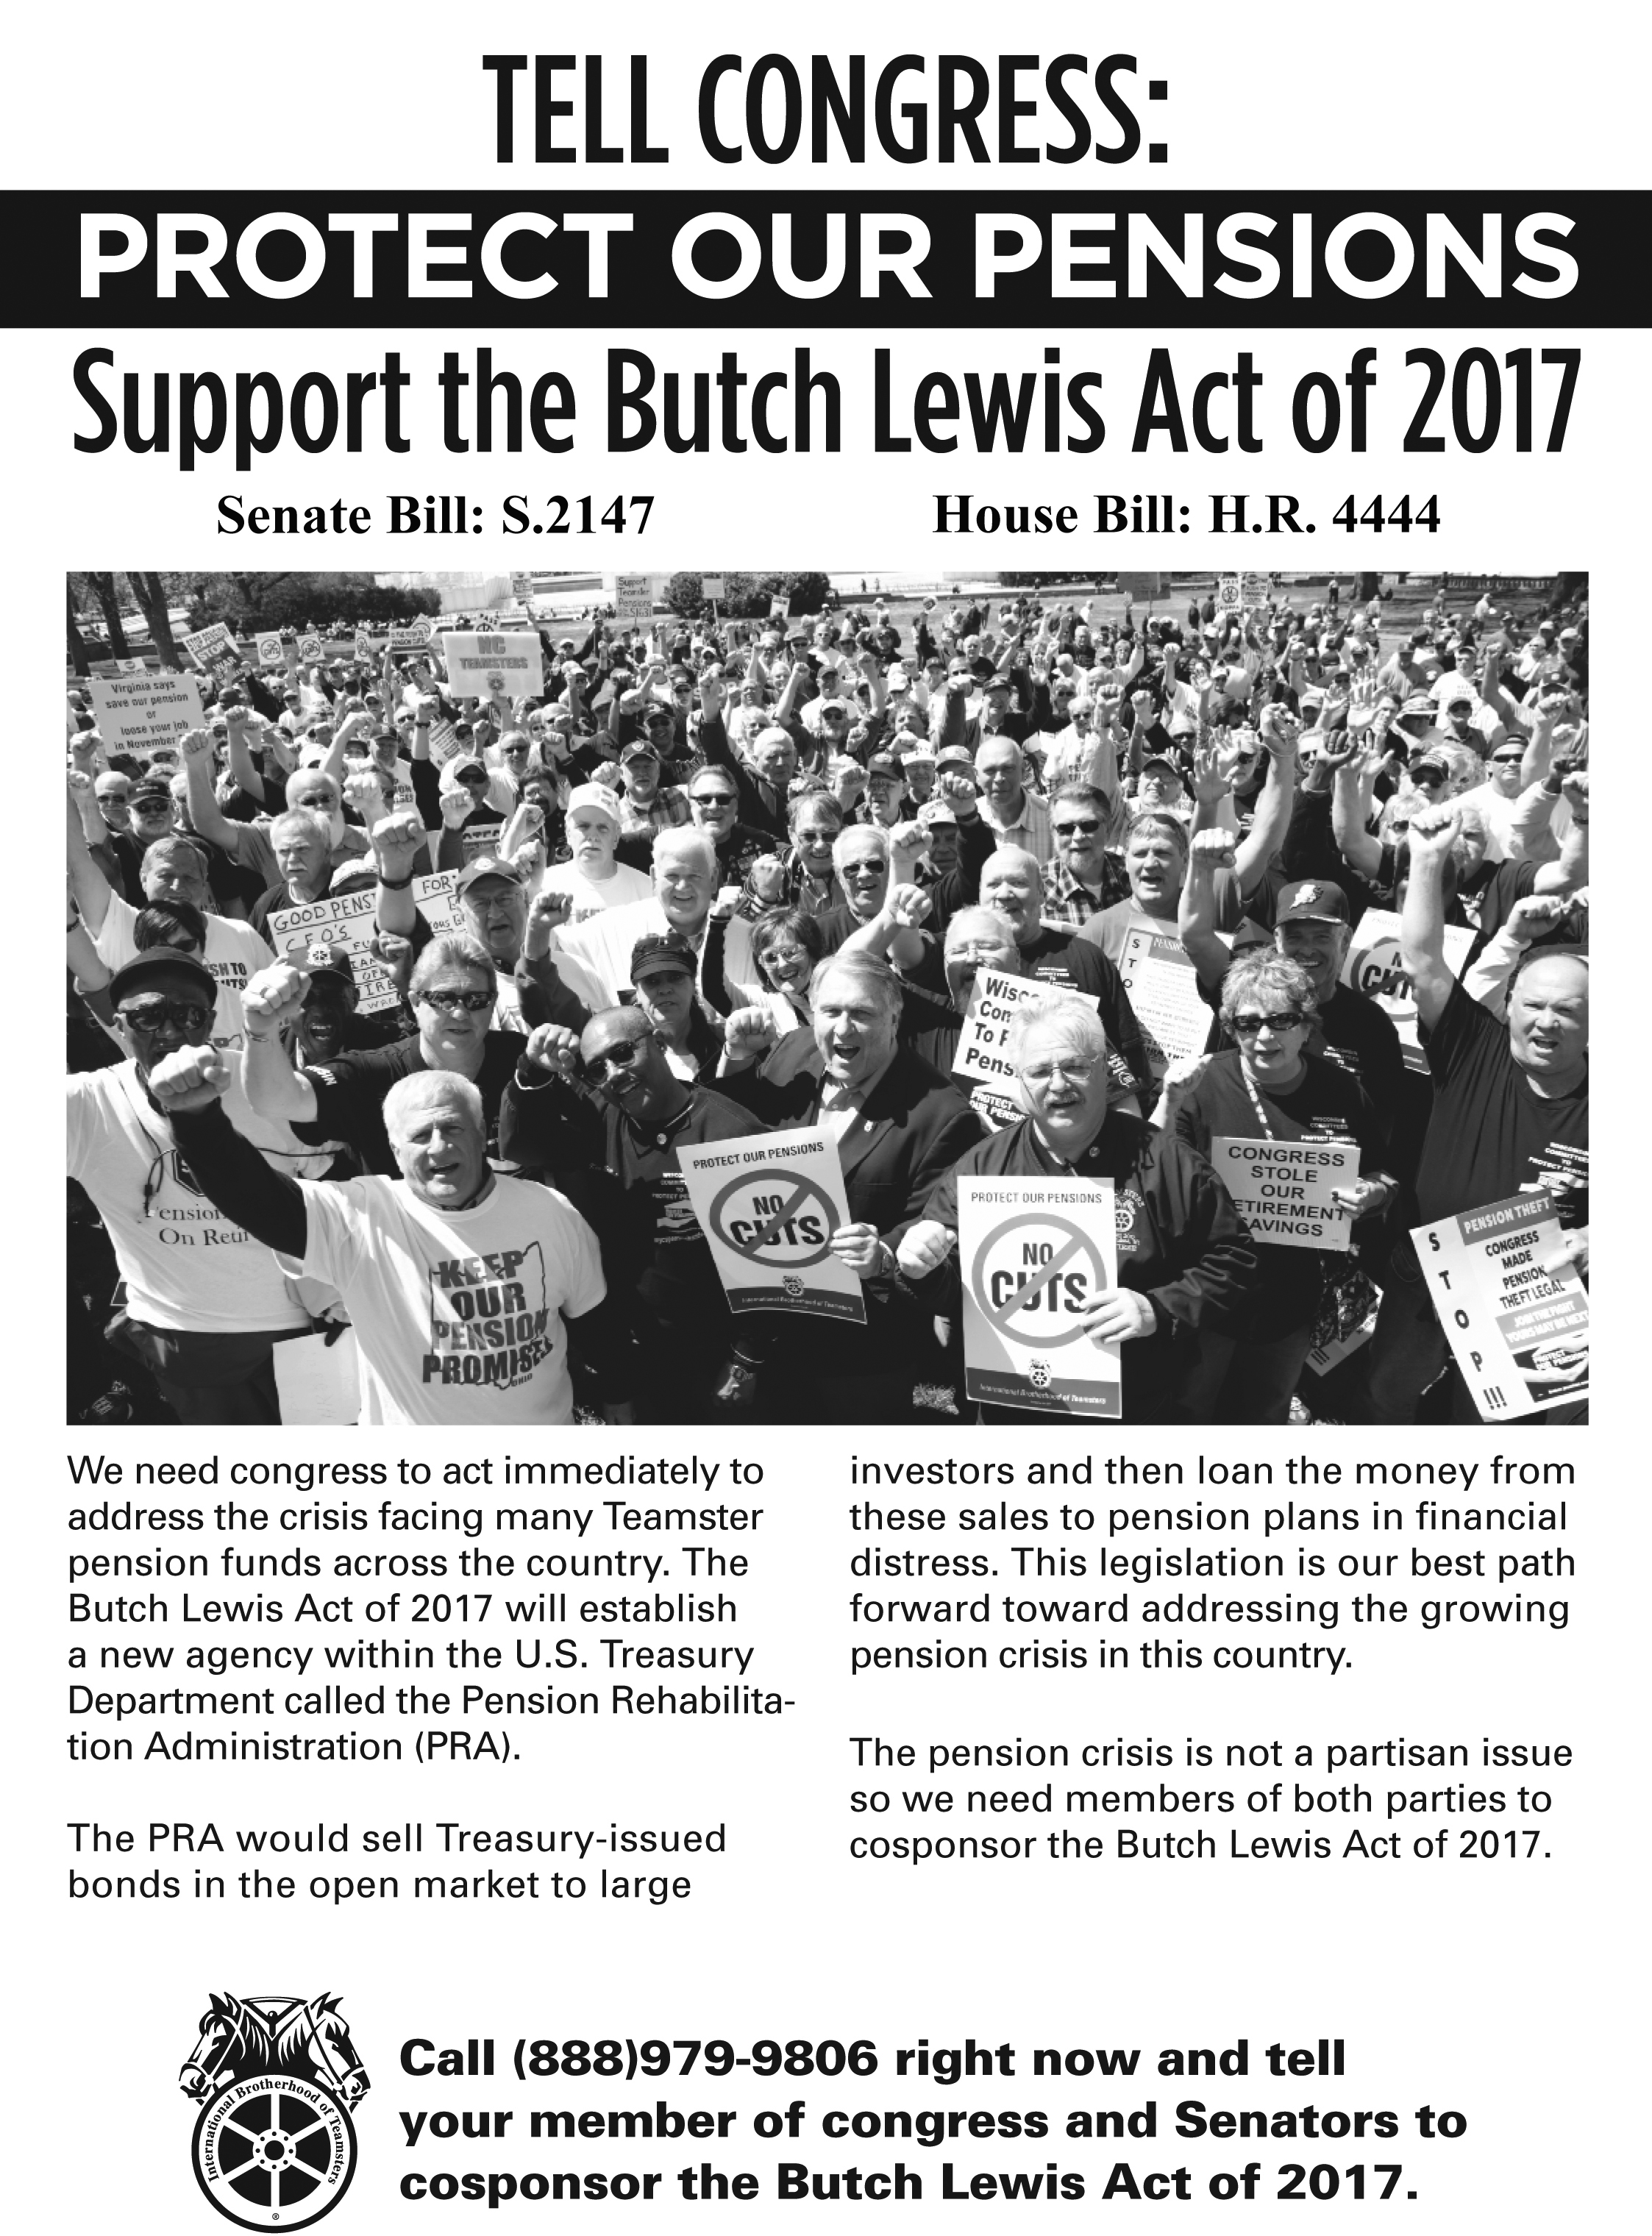 The Butch Lewis Act of 2017